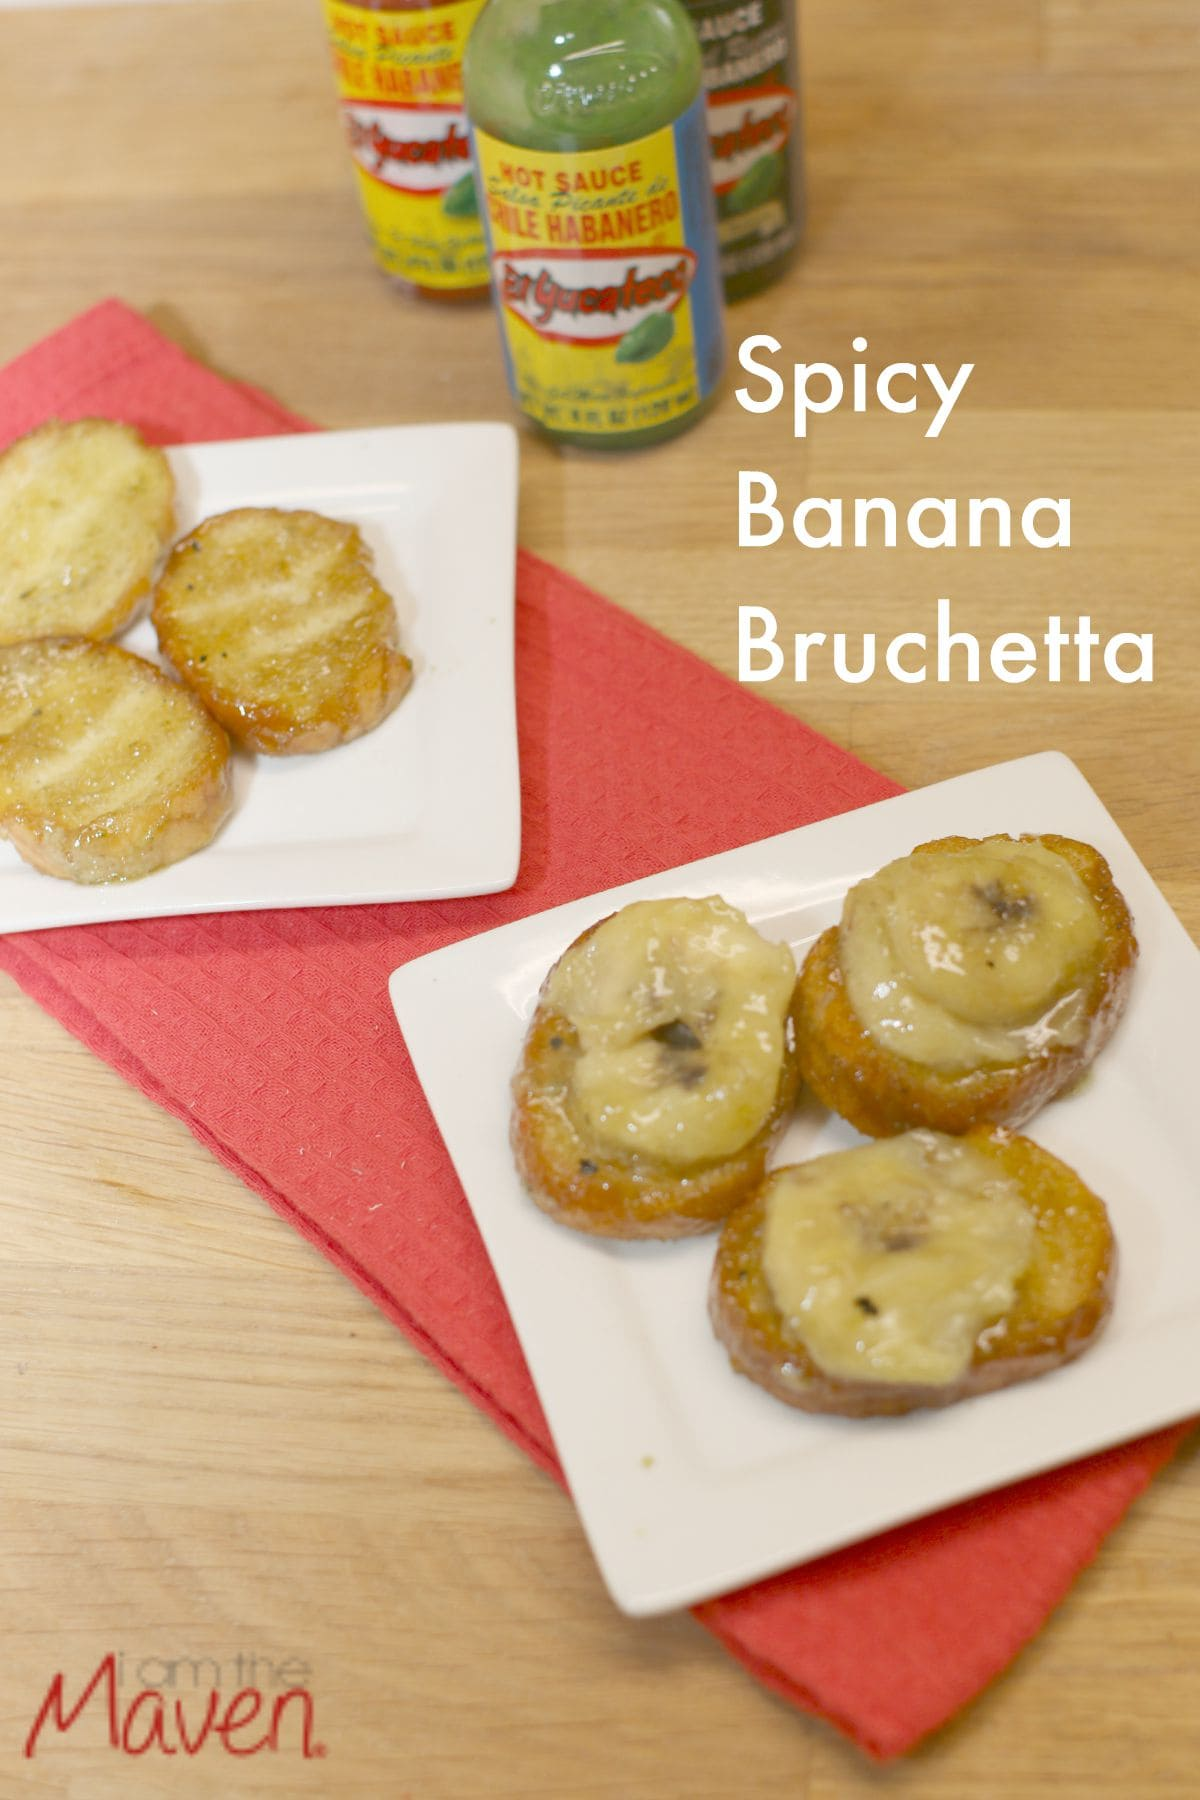 This Grilled Spicy Banana Bruchetta is both sweet and savory and the perfect EASY gameday snack! #KingofFlavor AD